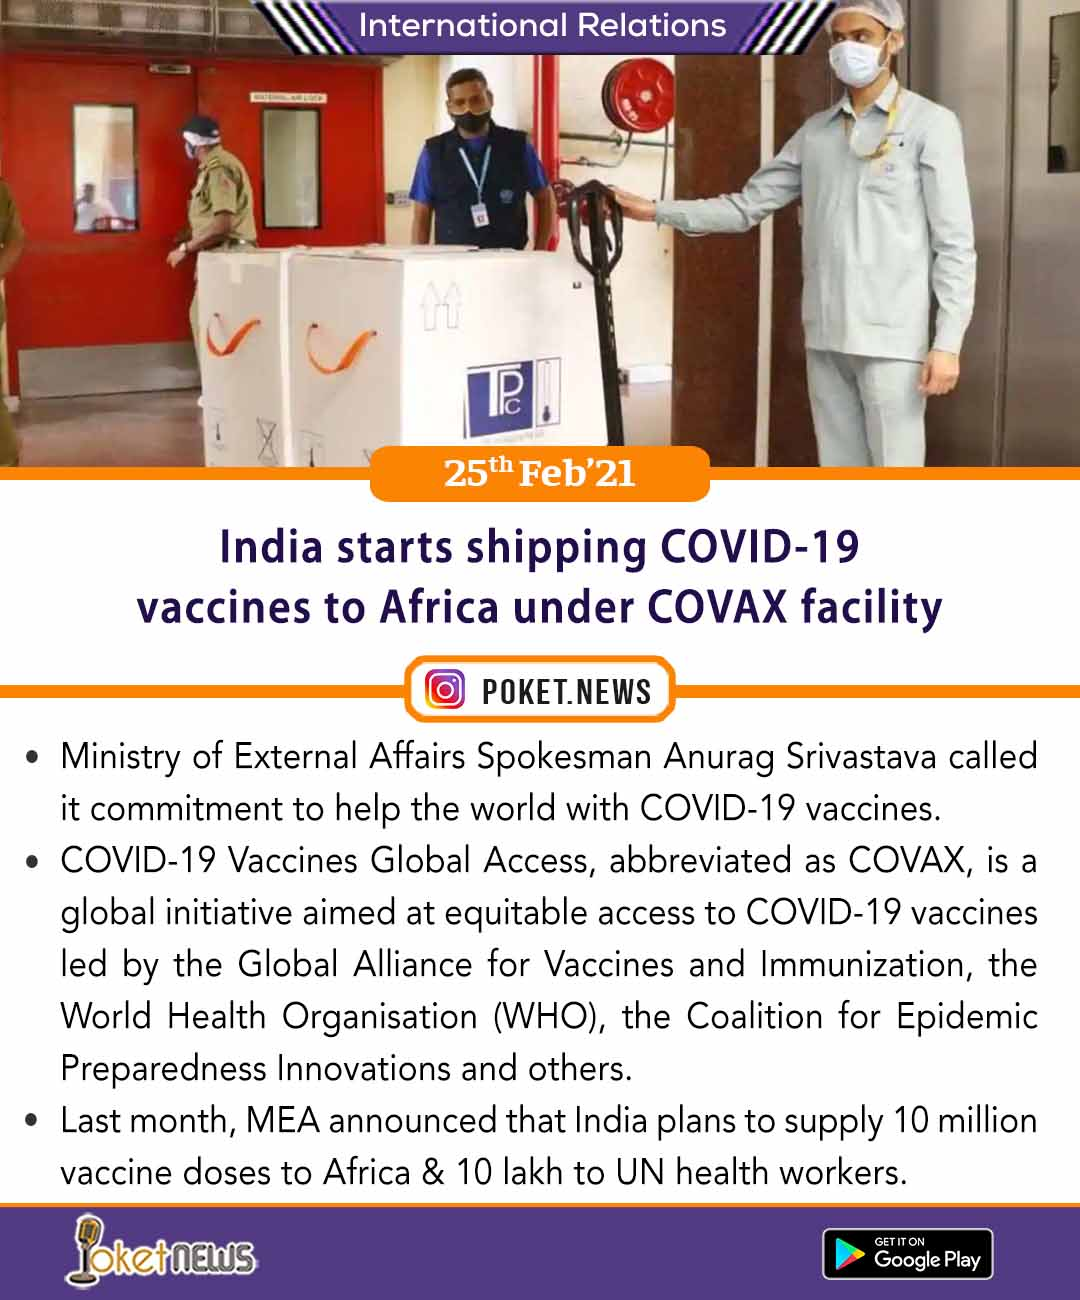 India starts shipping COVID-19 vaccines to Africa under COVAX facility